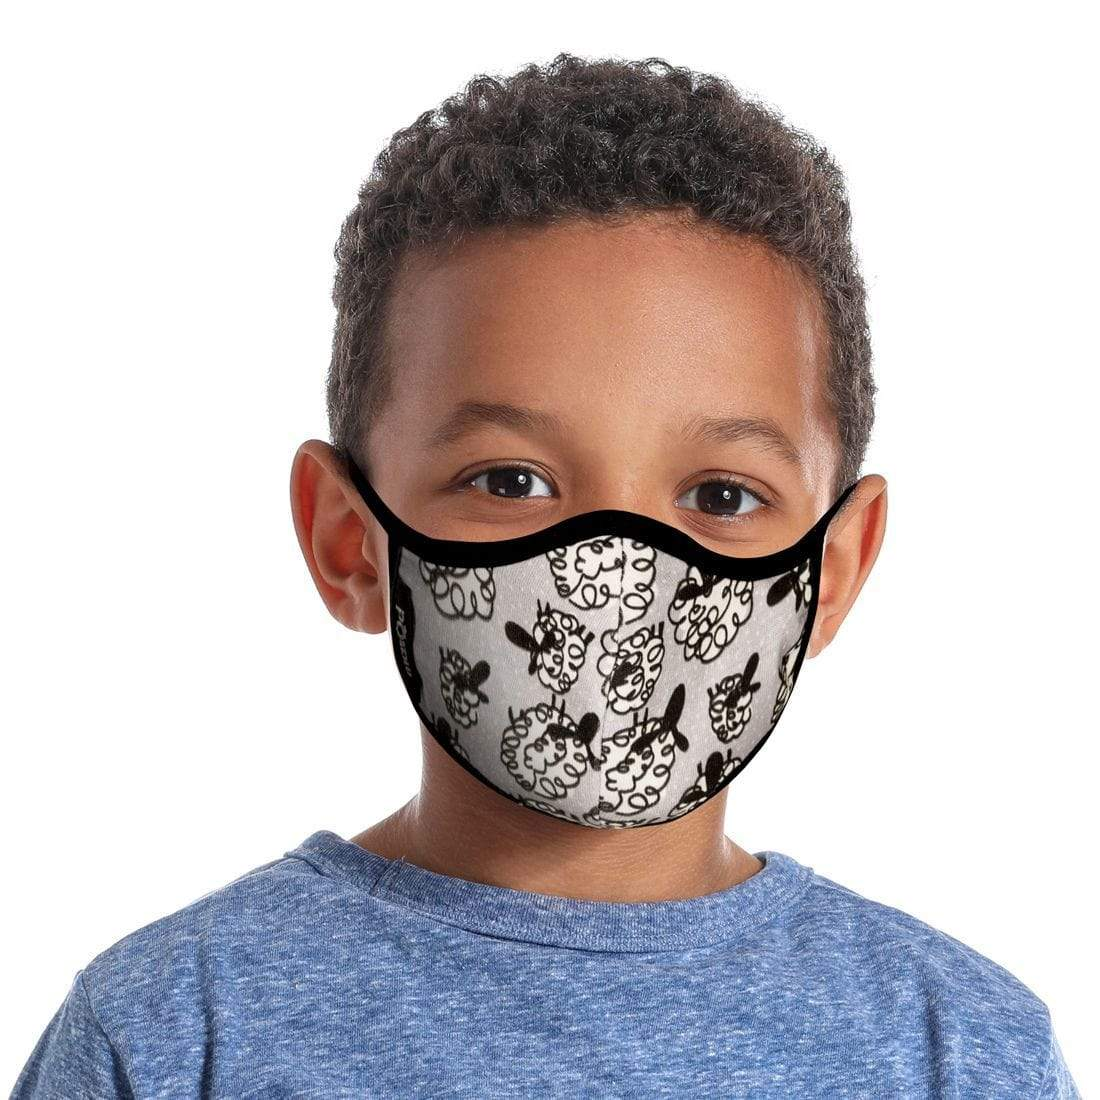 Counting Sheep Face Mask - Kids ( Organic Cotton )